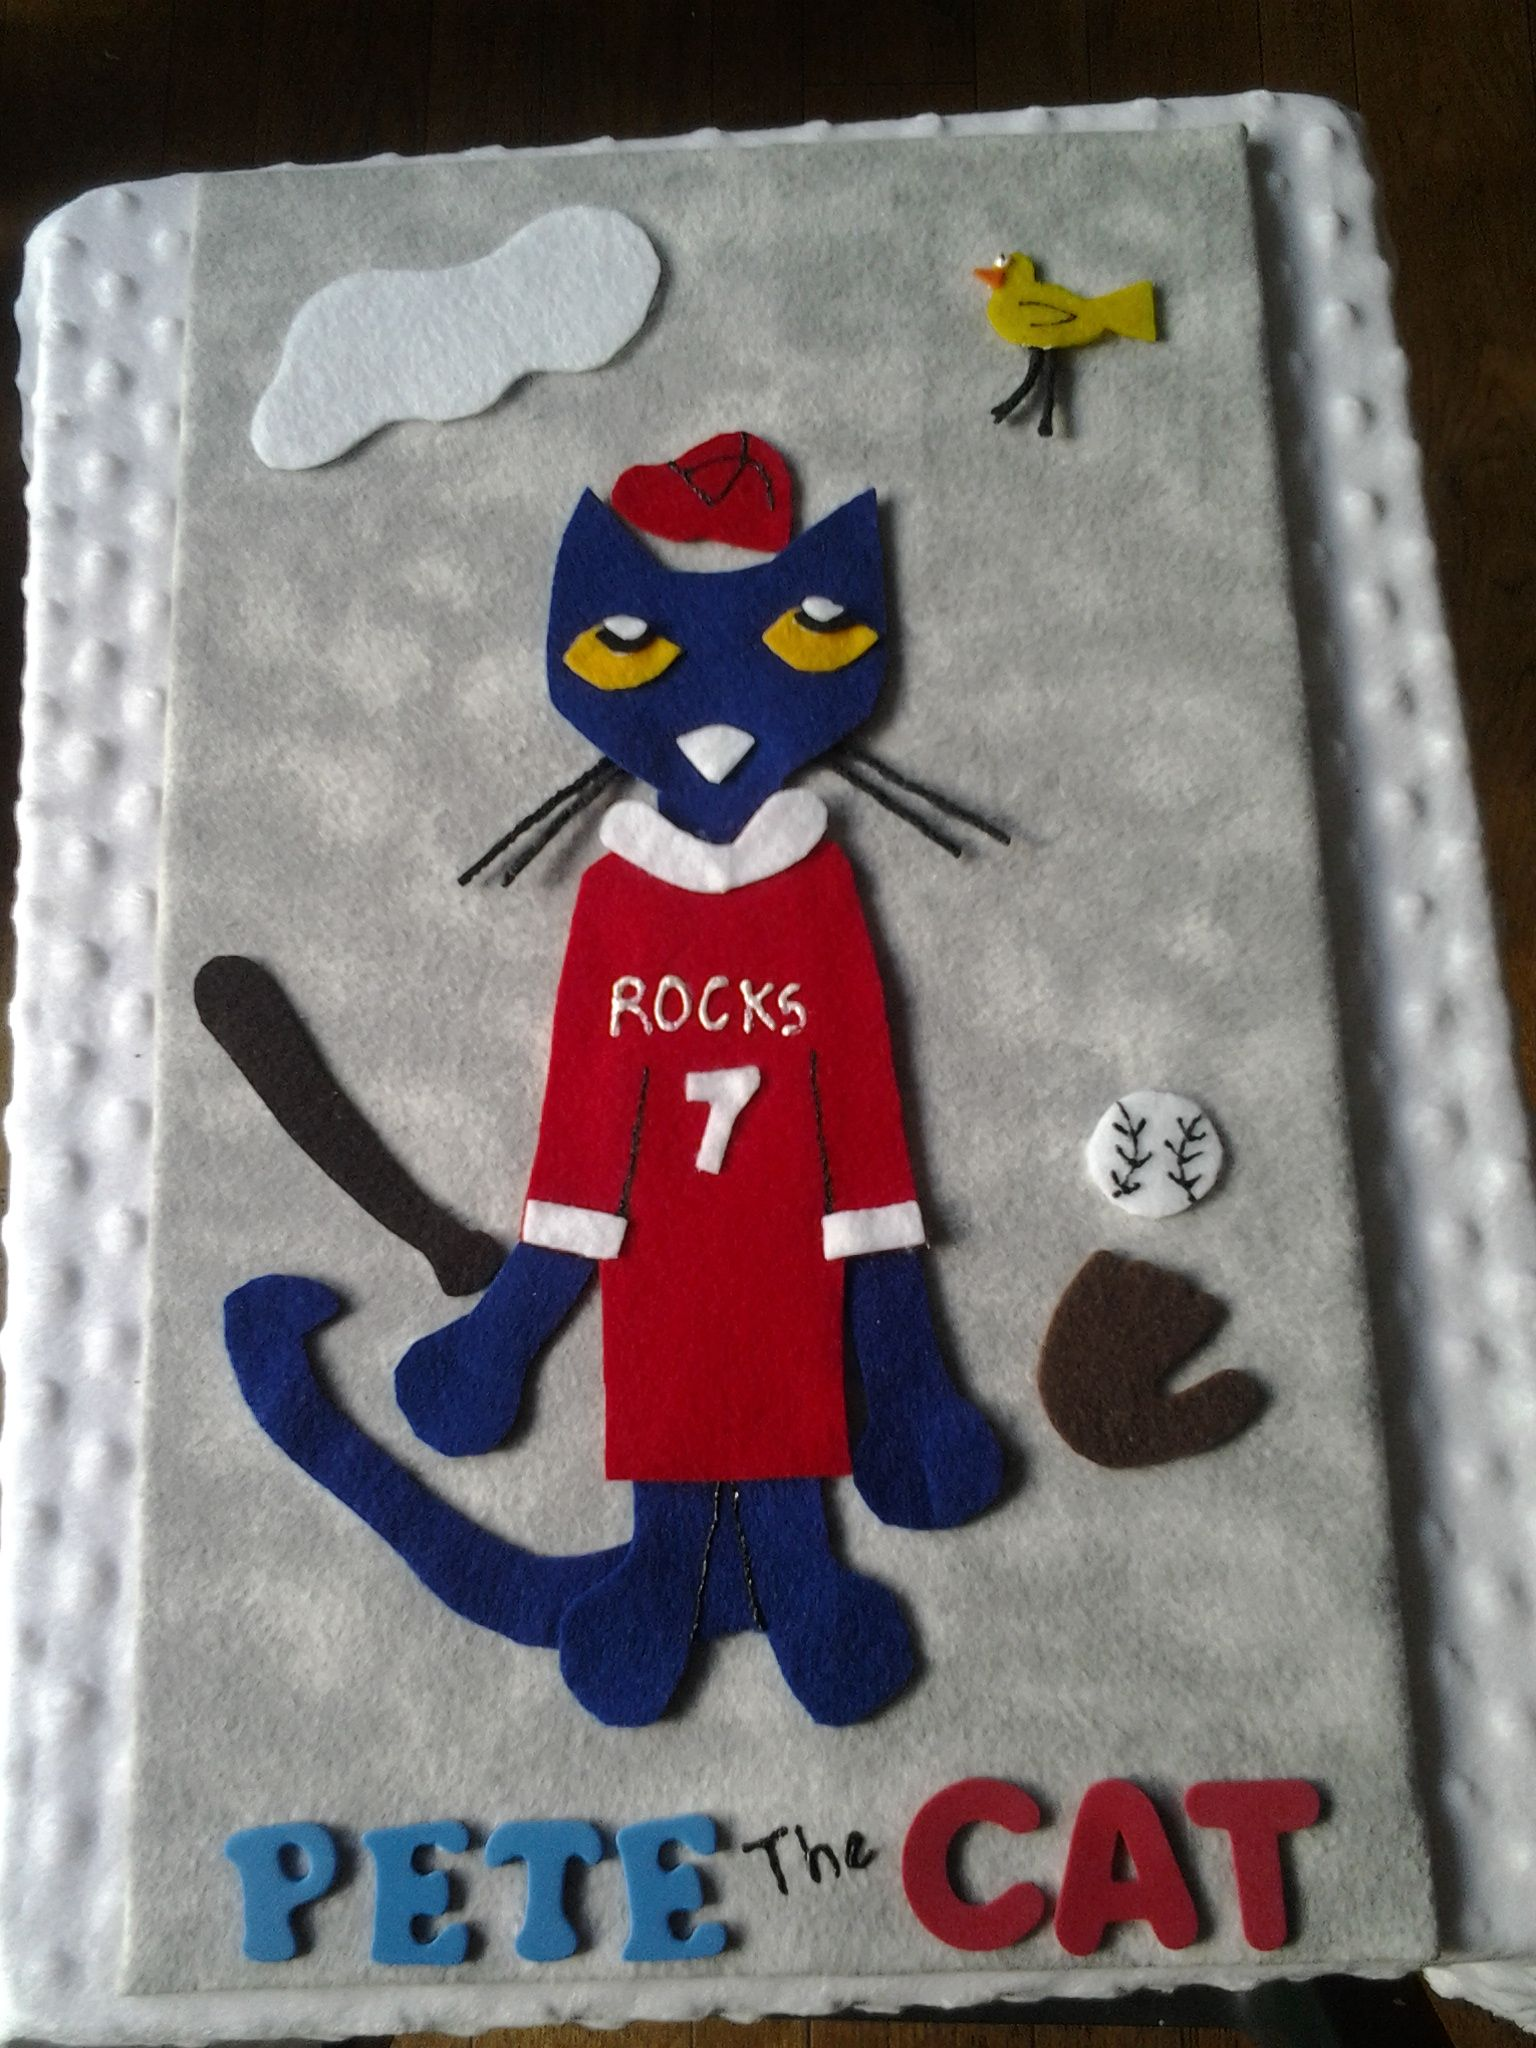 Pete The Cat Play Ball Felt On Flannel Story Board From Www Carolcodesigns Etsy Com Unique Crafts Unique Items Products Pete The Cat